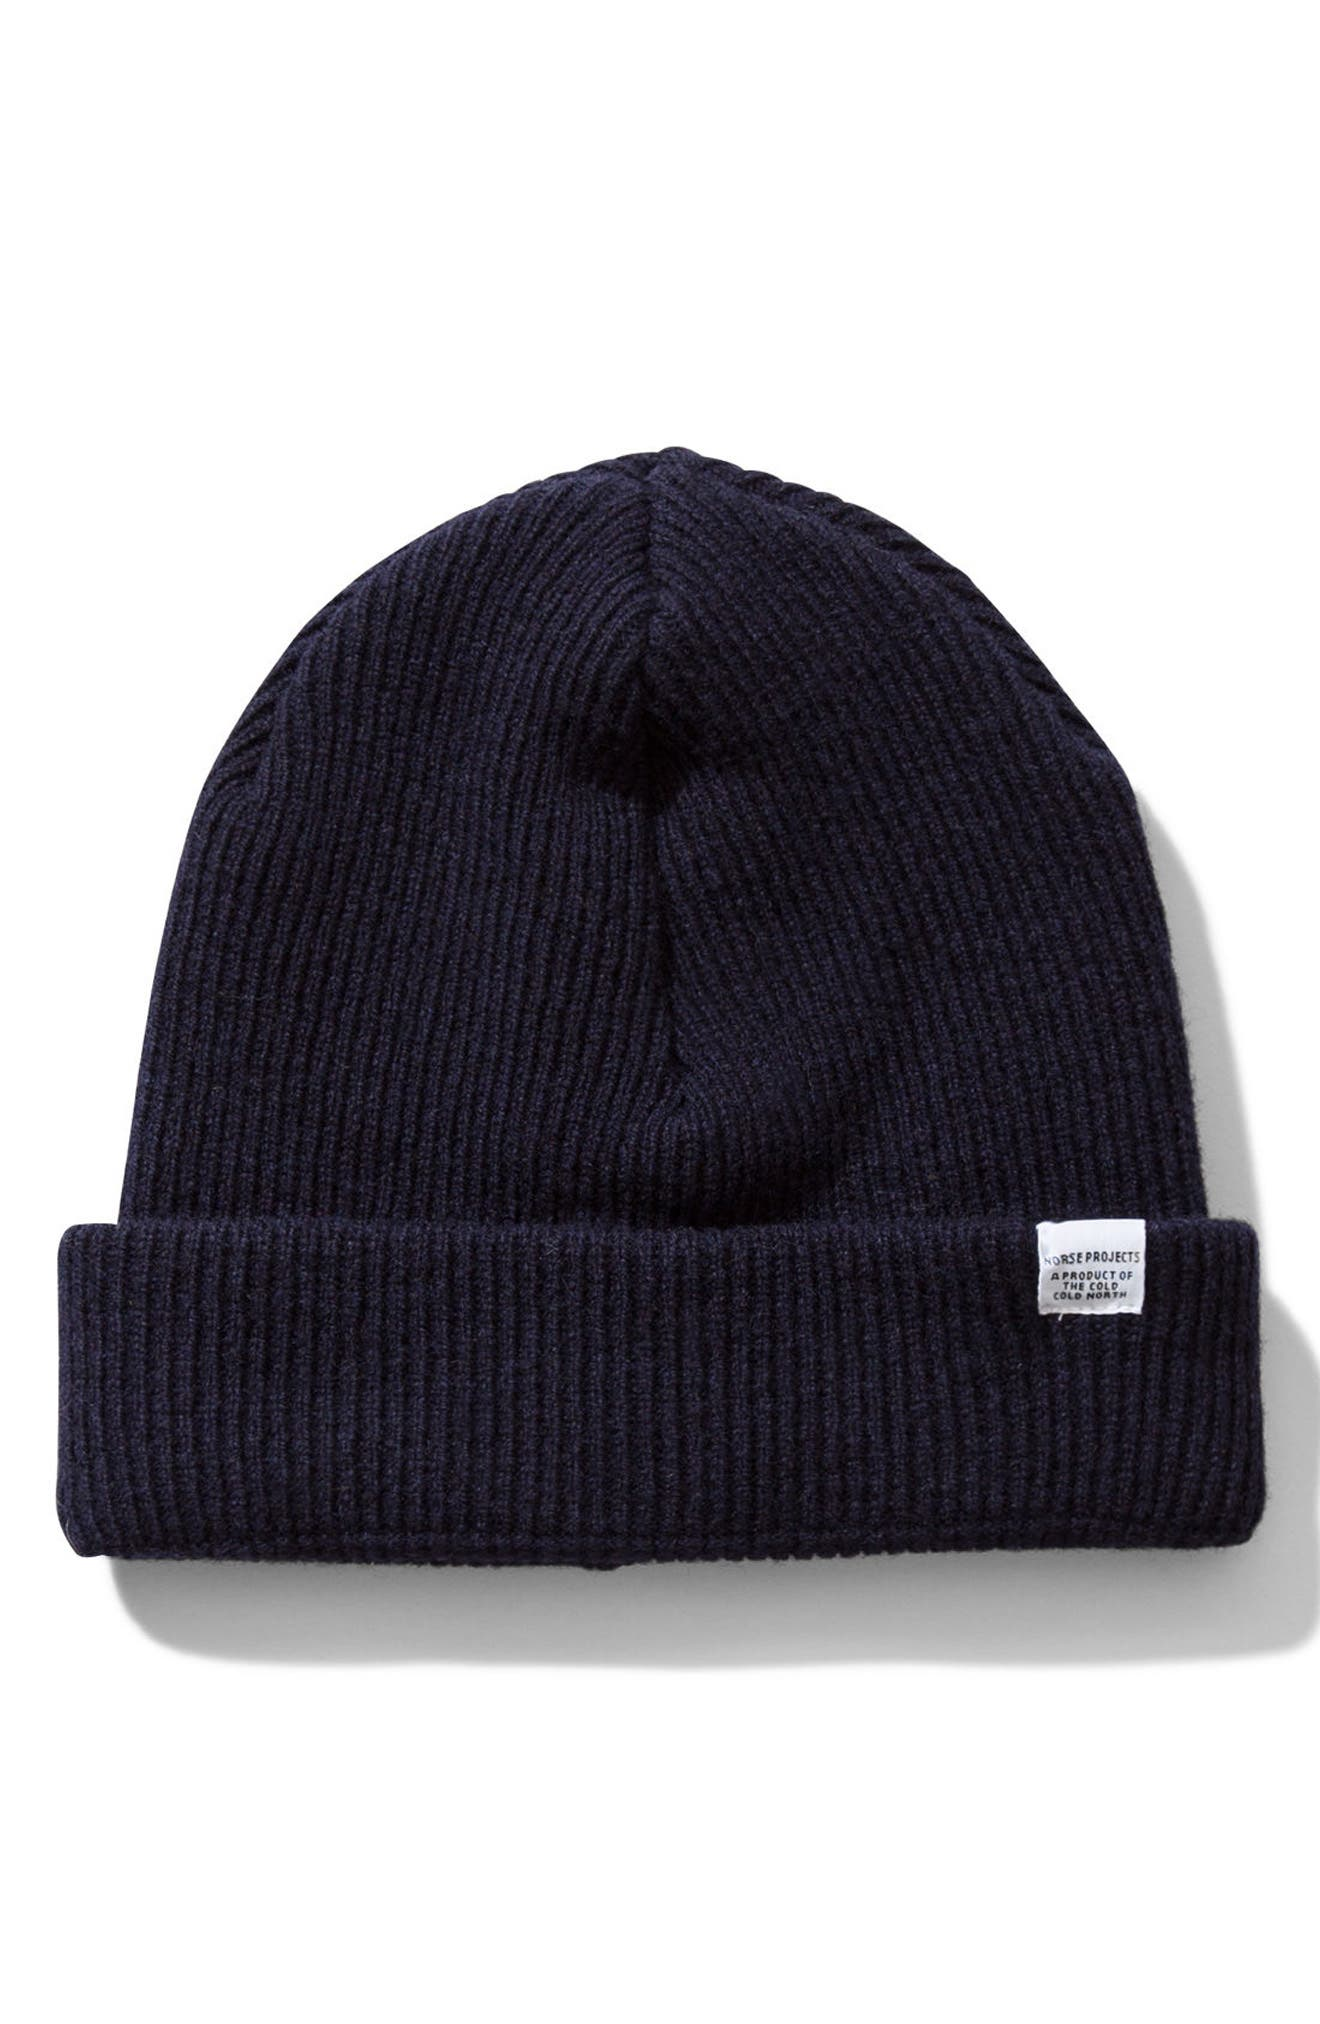 Norse Project Wool Knit Cap,                             Alternate thumbnail 2, color,                             410